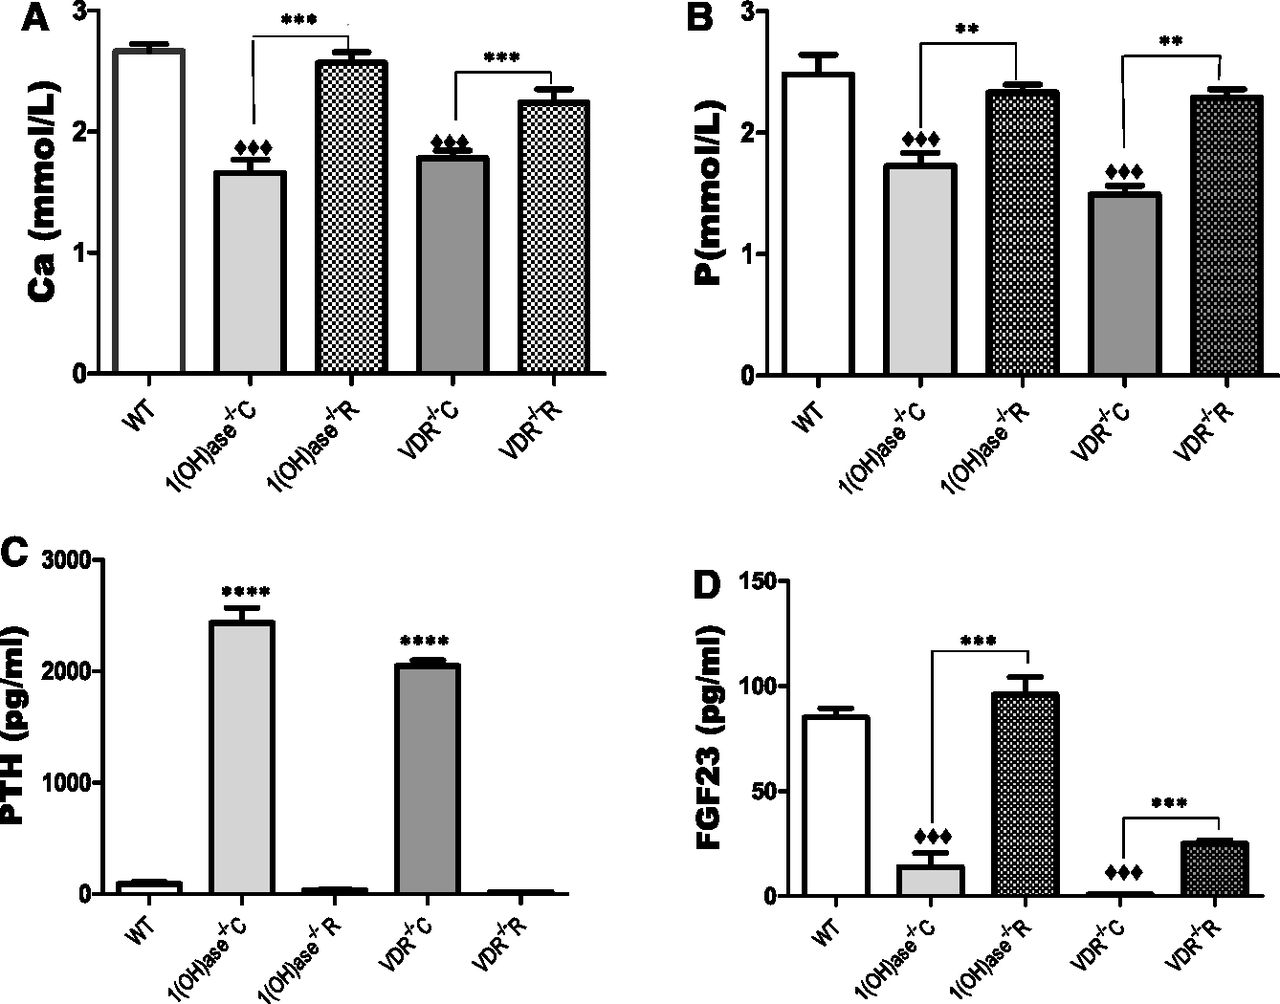 Fibroblast Growth Factor 23 Regulation by Systemic and Local